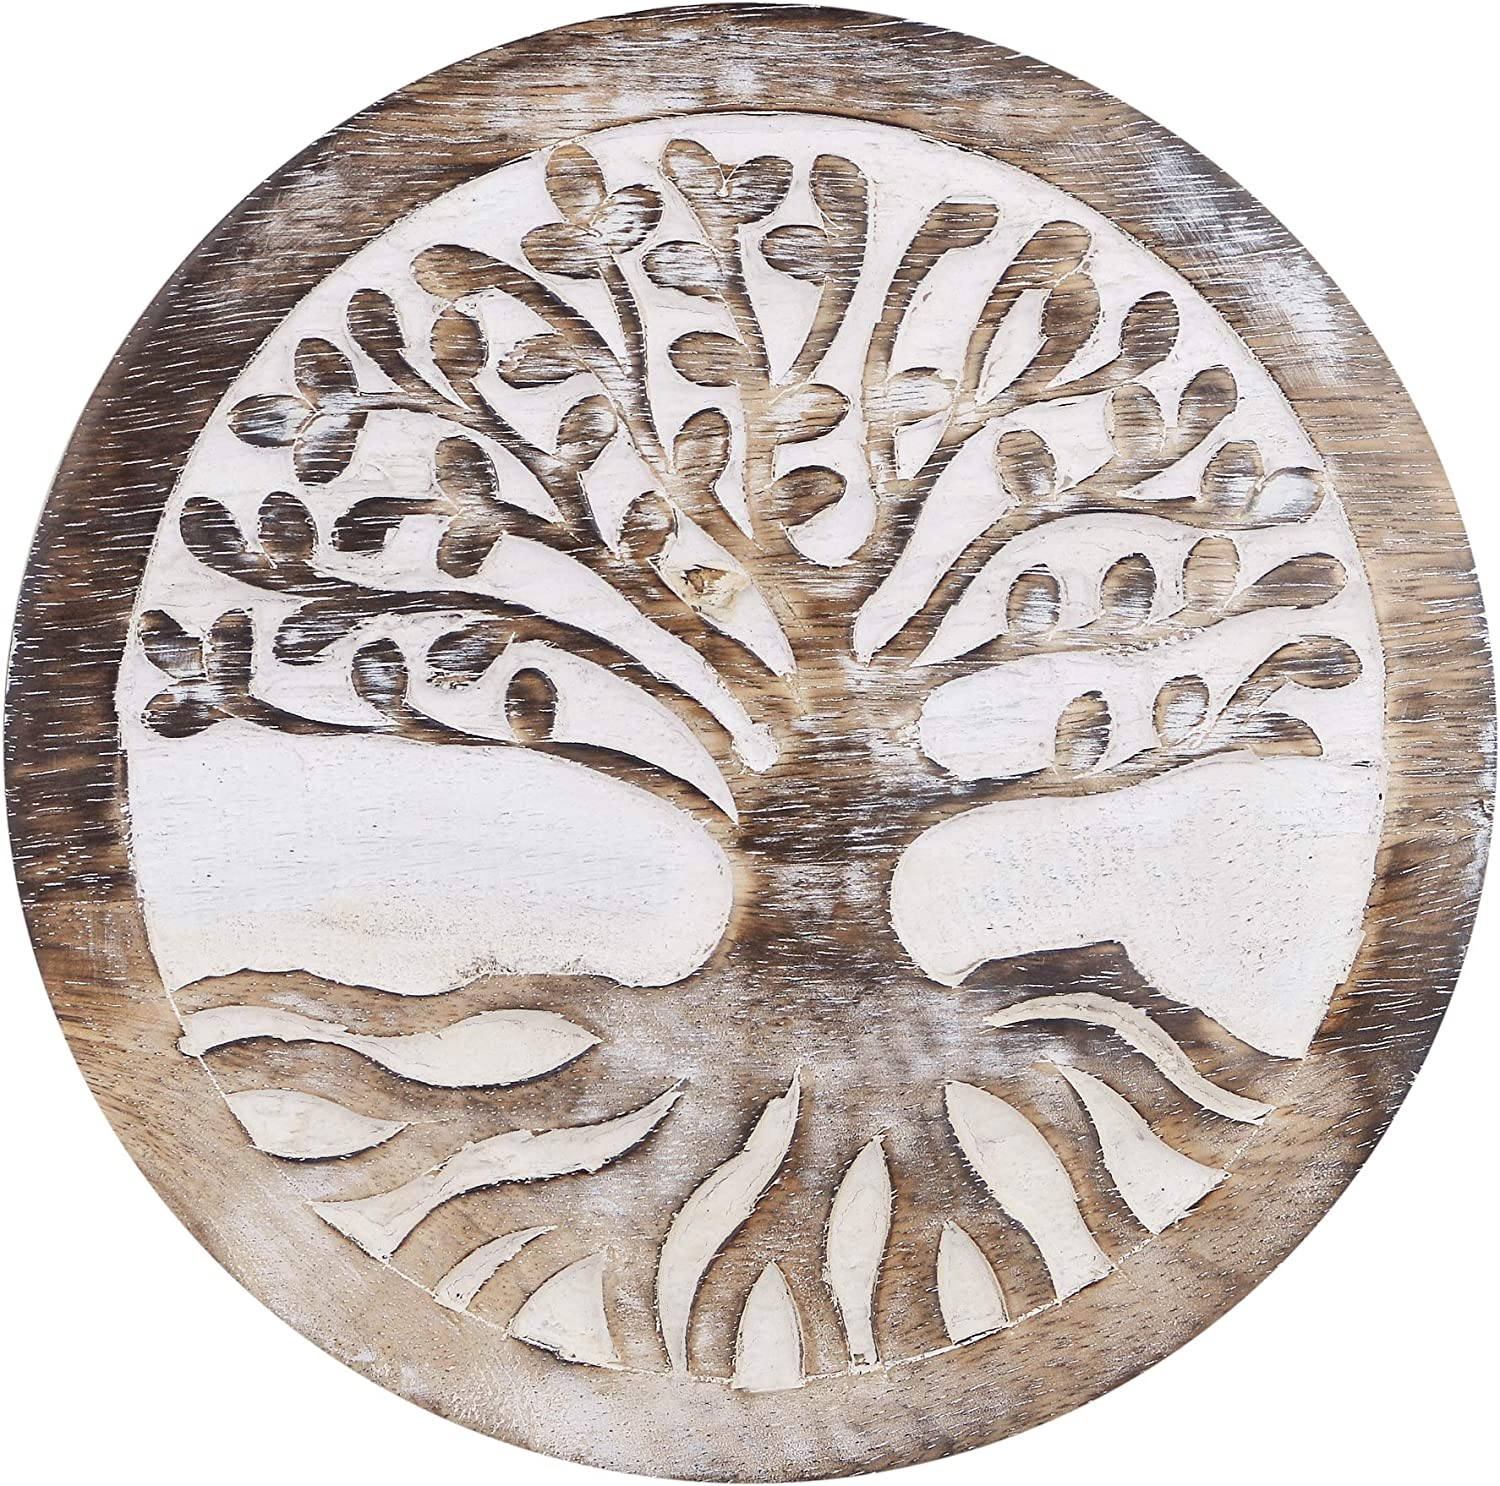 Gifts For Women Wooden Trivets For Hot Pots and Pans Tea Pot Holders Hot Pads Tree of Life Design Modern Farmhouse Kitchen Counter Decor Dia 8'' Inch - Set of 2 (Walnut)